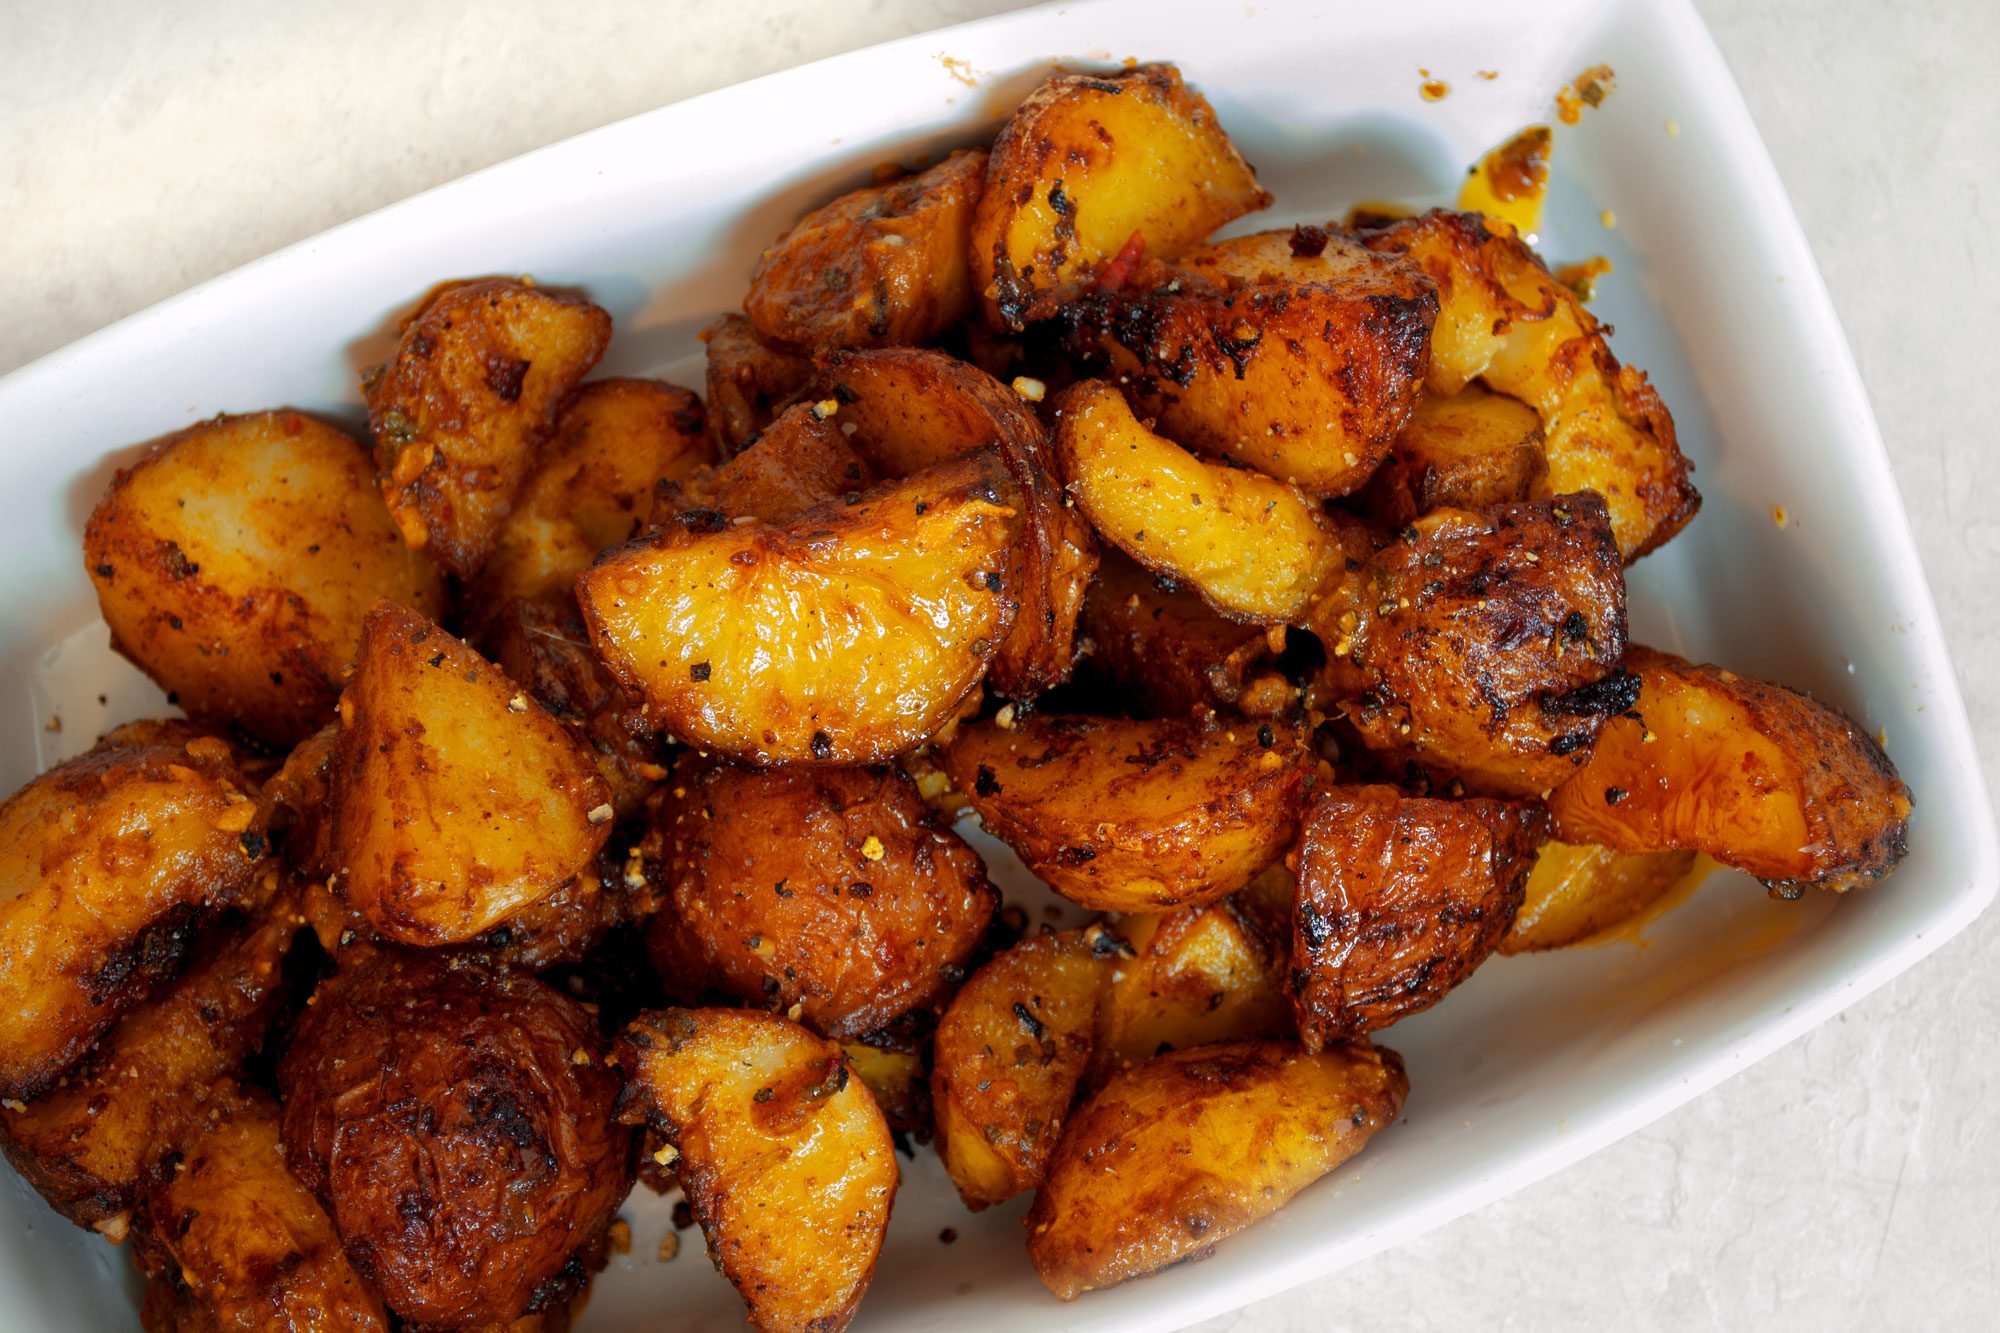 caramelized roasted potatoes